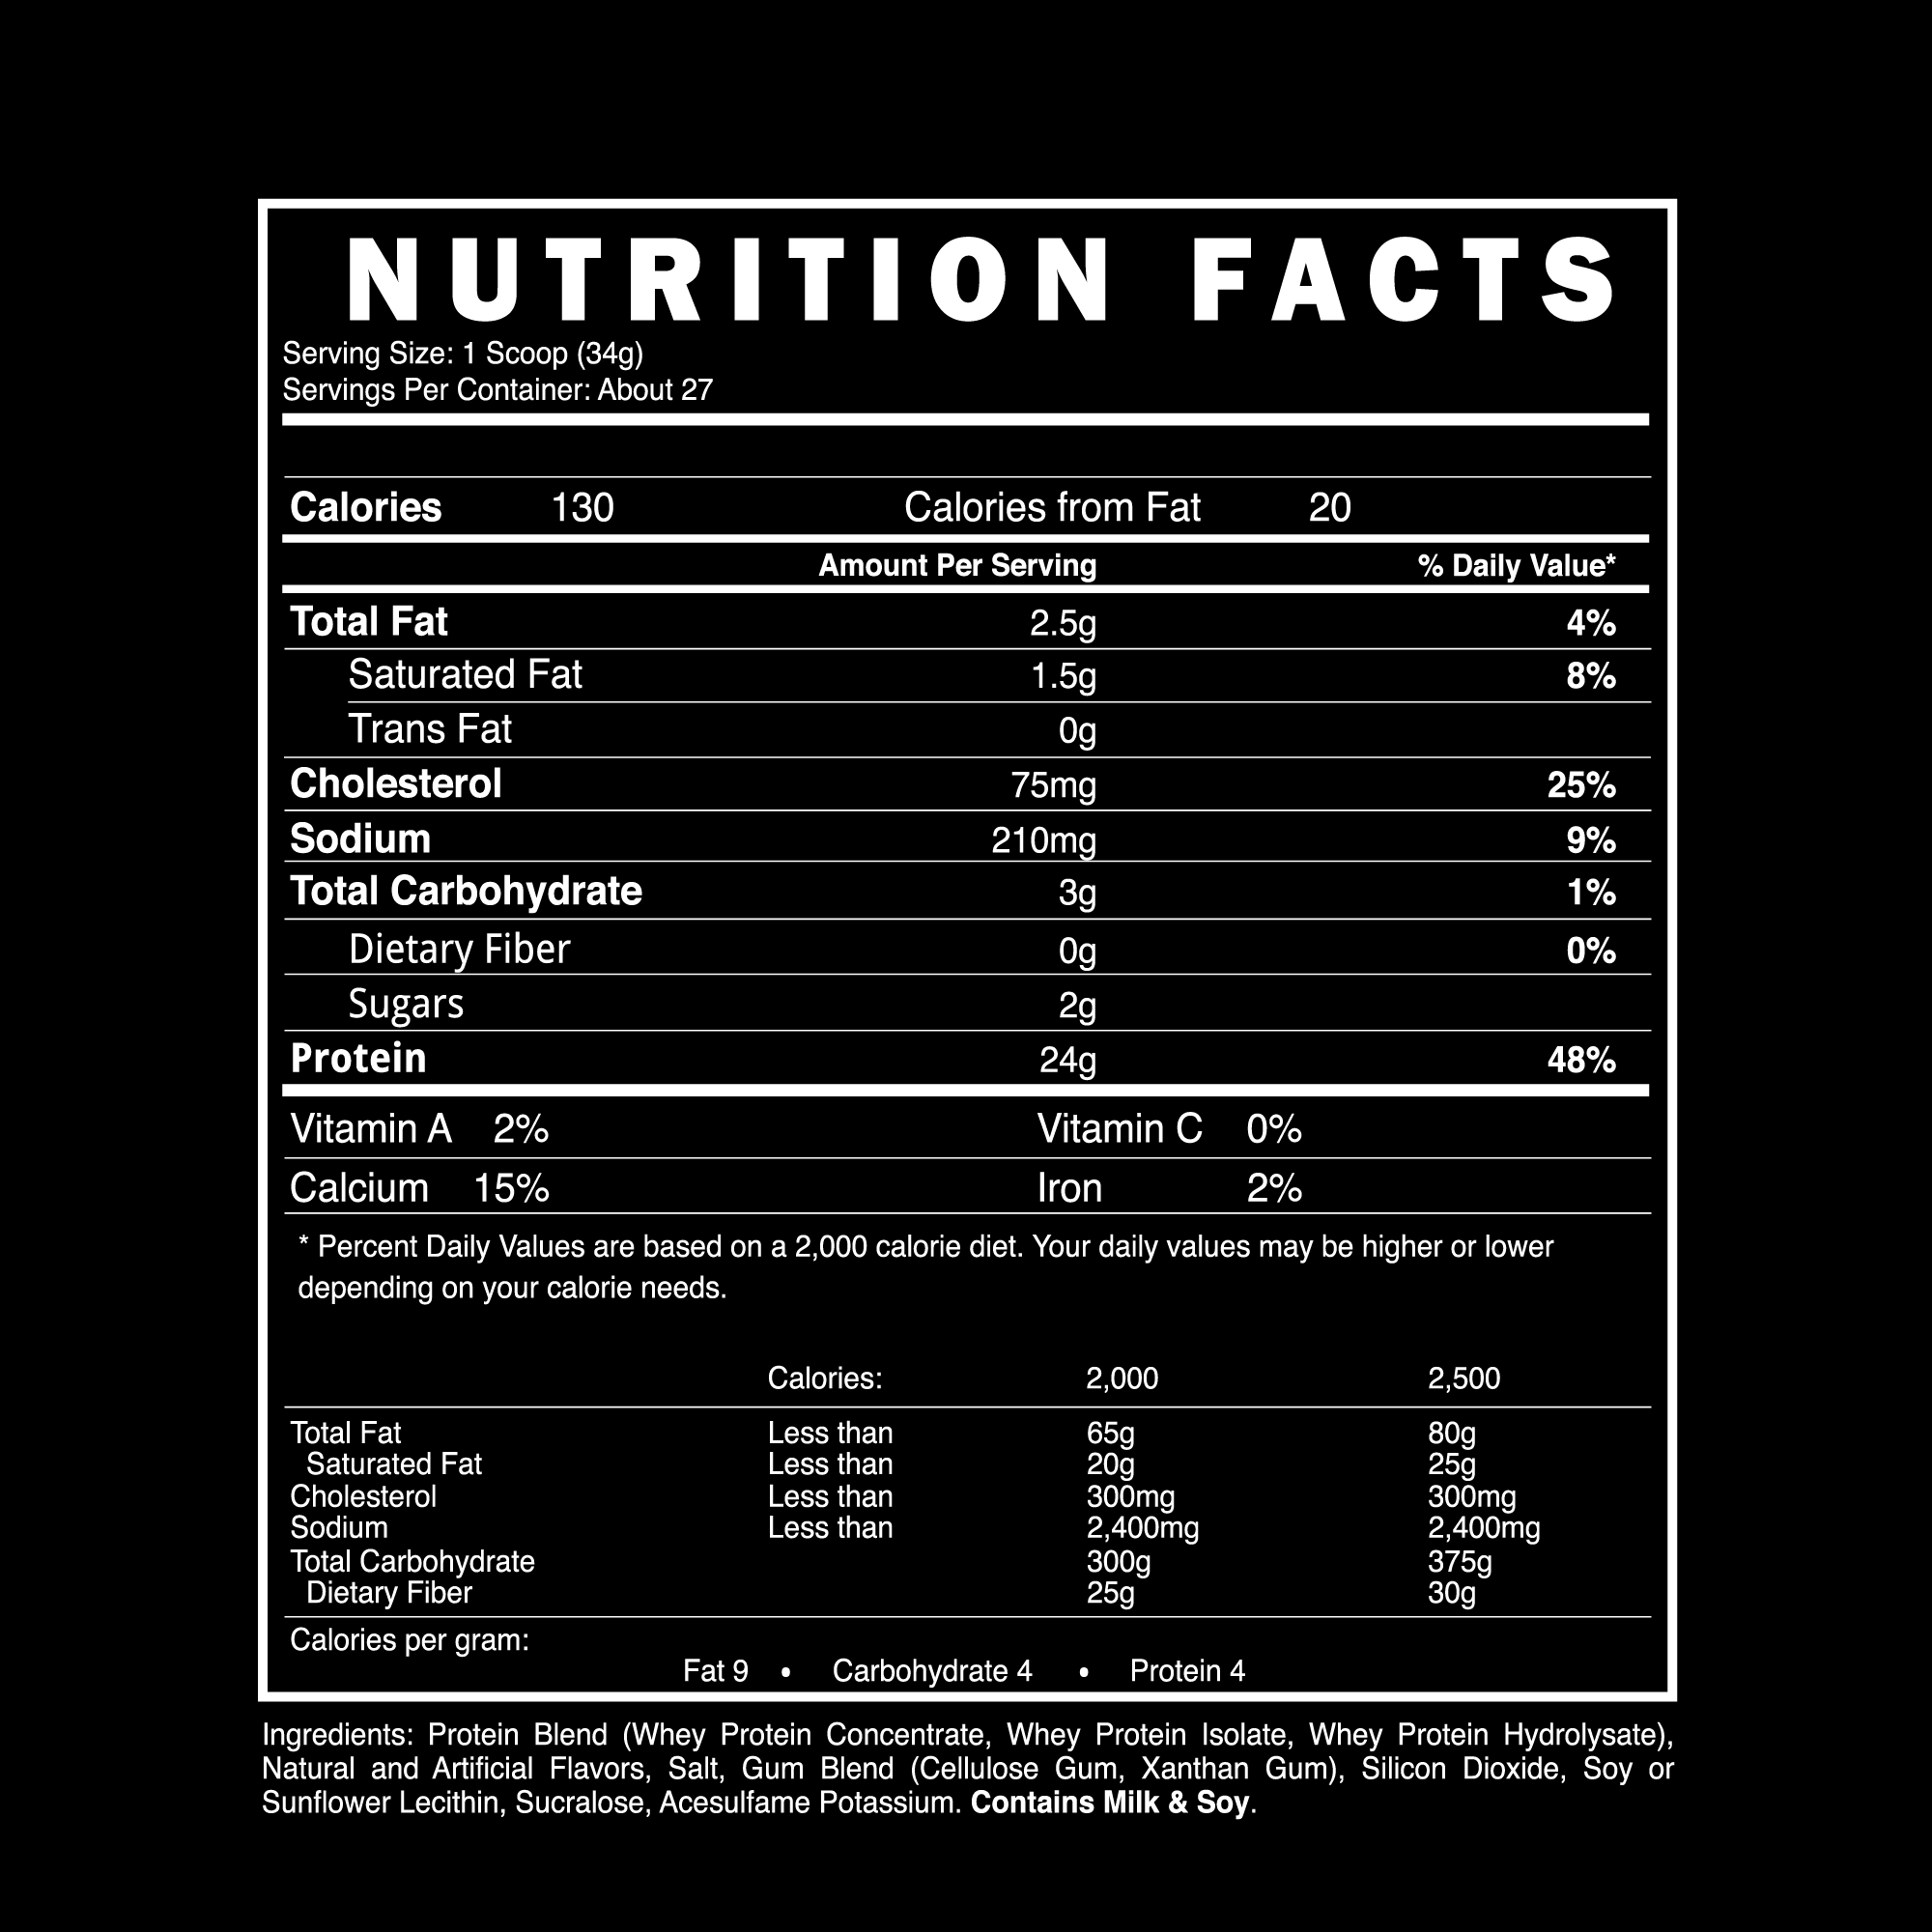 3-Whey | Whey Protein Blend | Blackstone Labs | Supplement Facts Panel